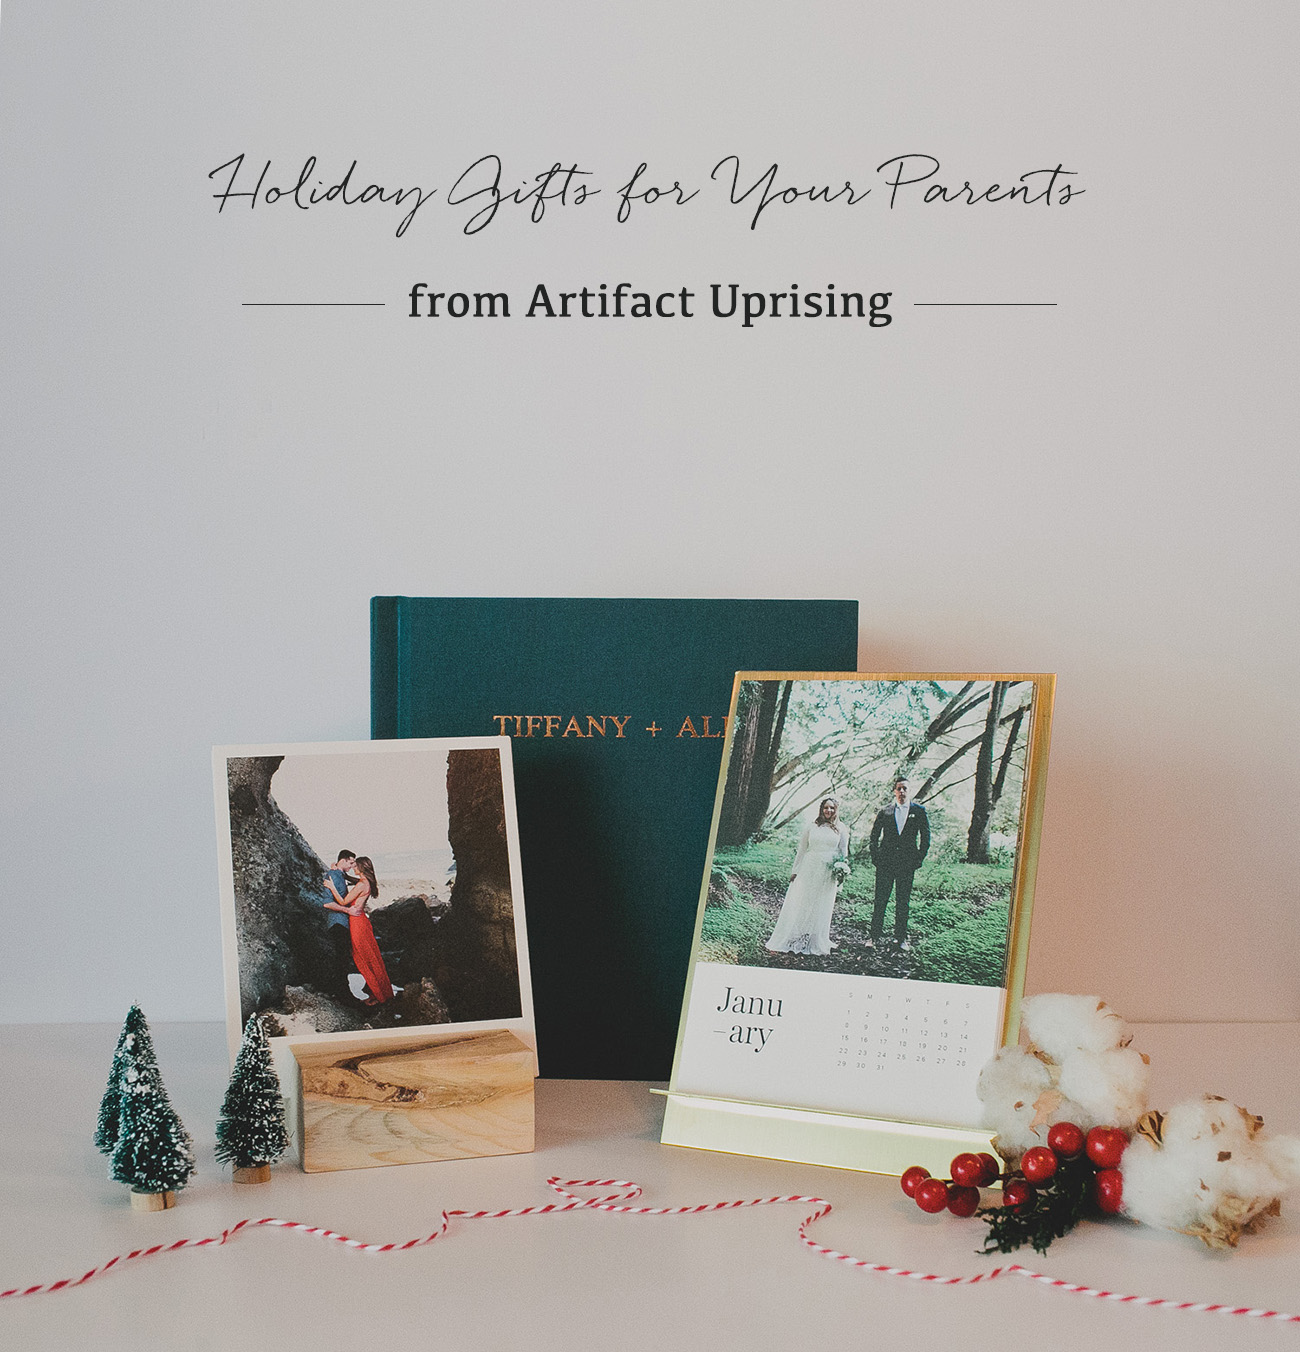 Holiday Gifts from Artifact Uprising